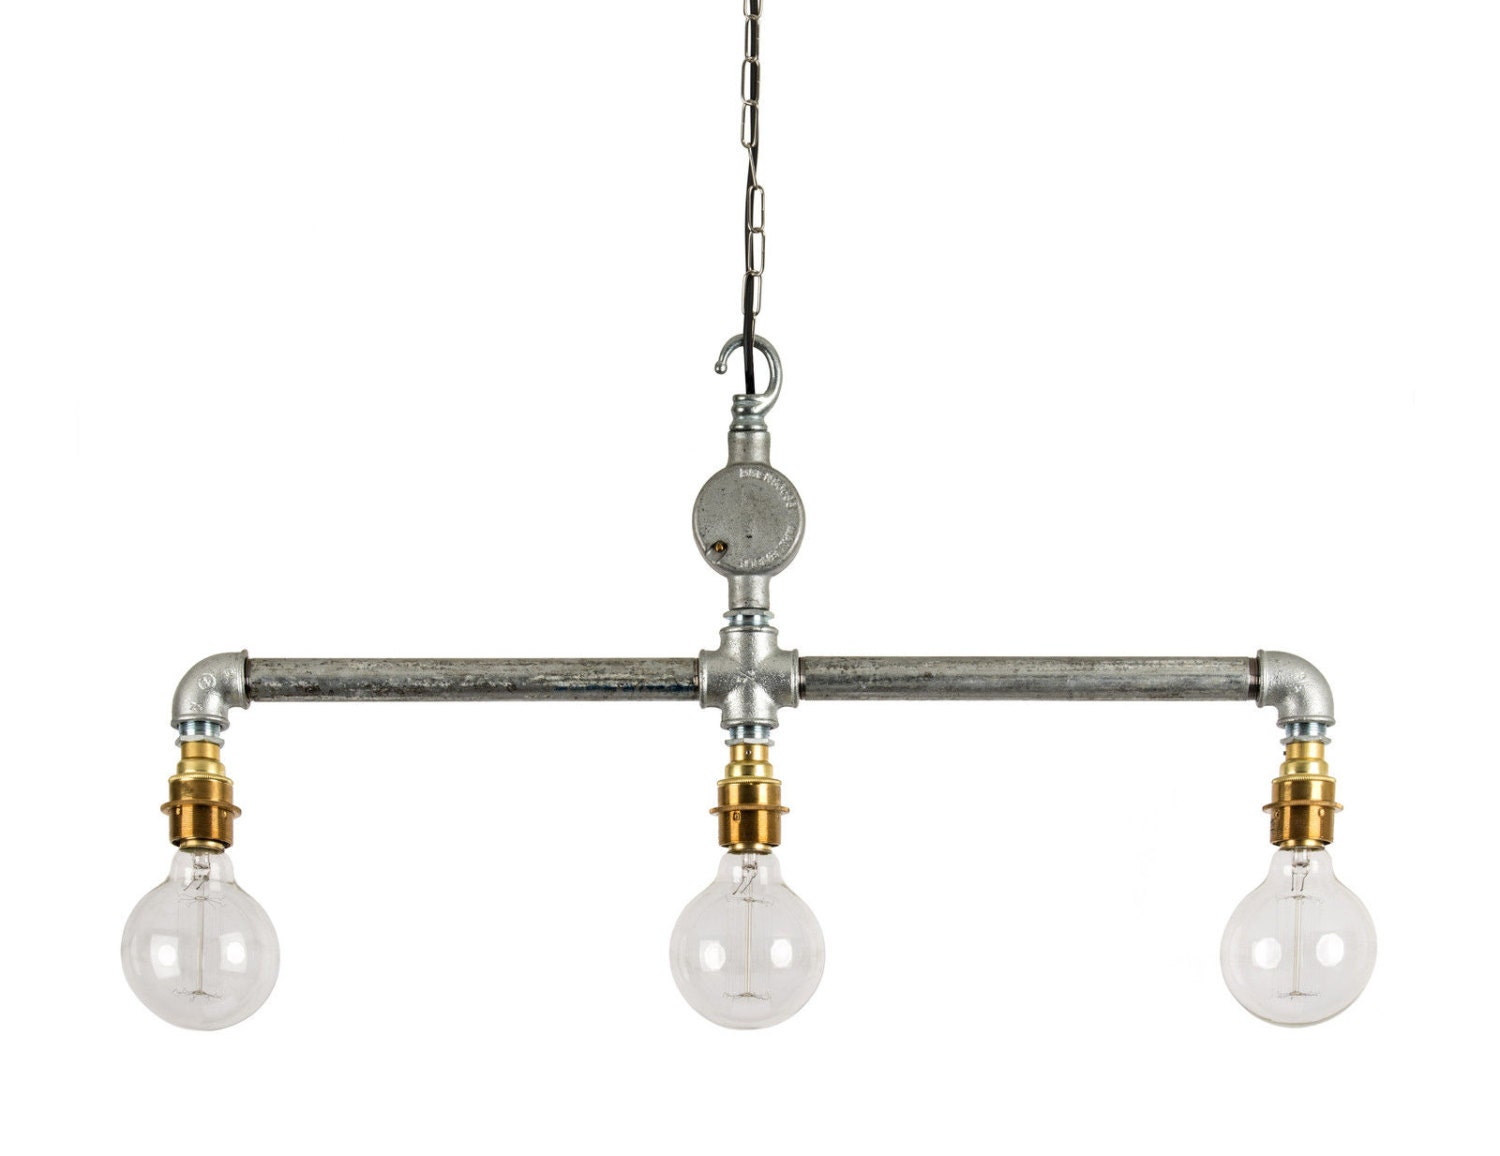 Industrial Steel Conduit Ceiling Hanging Pipe Light E27 Bar